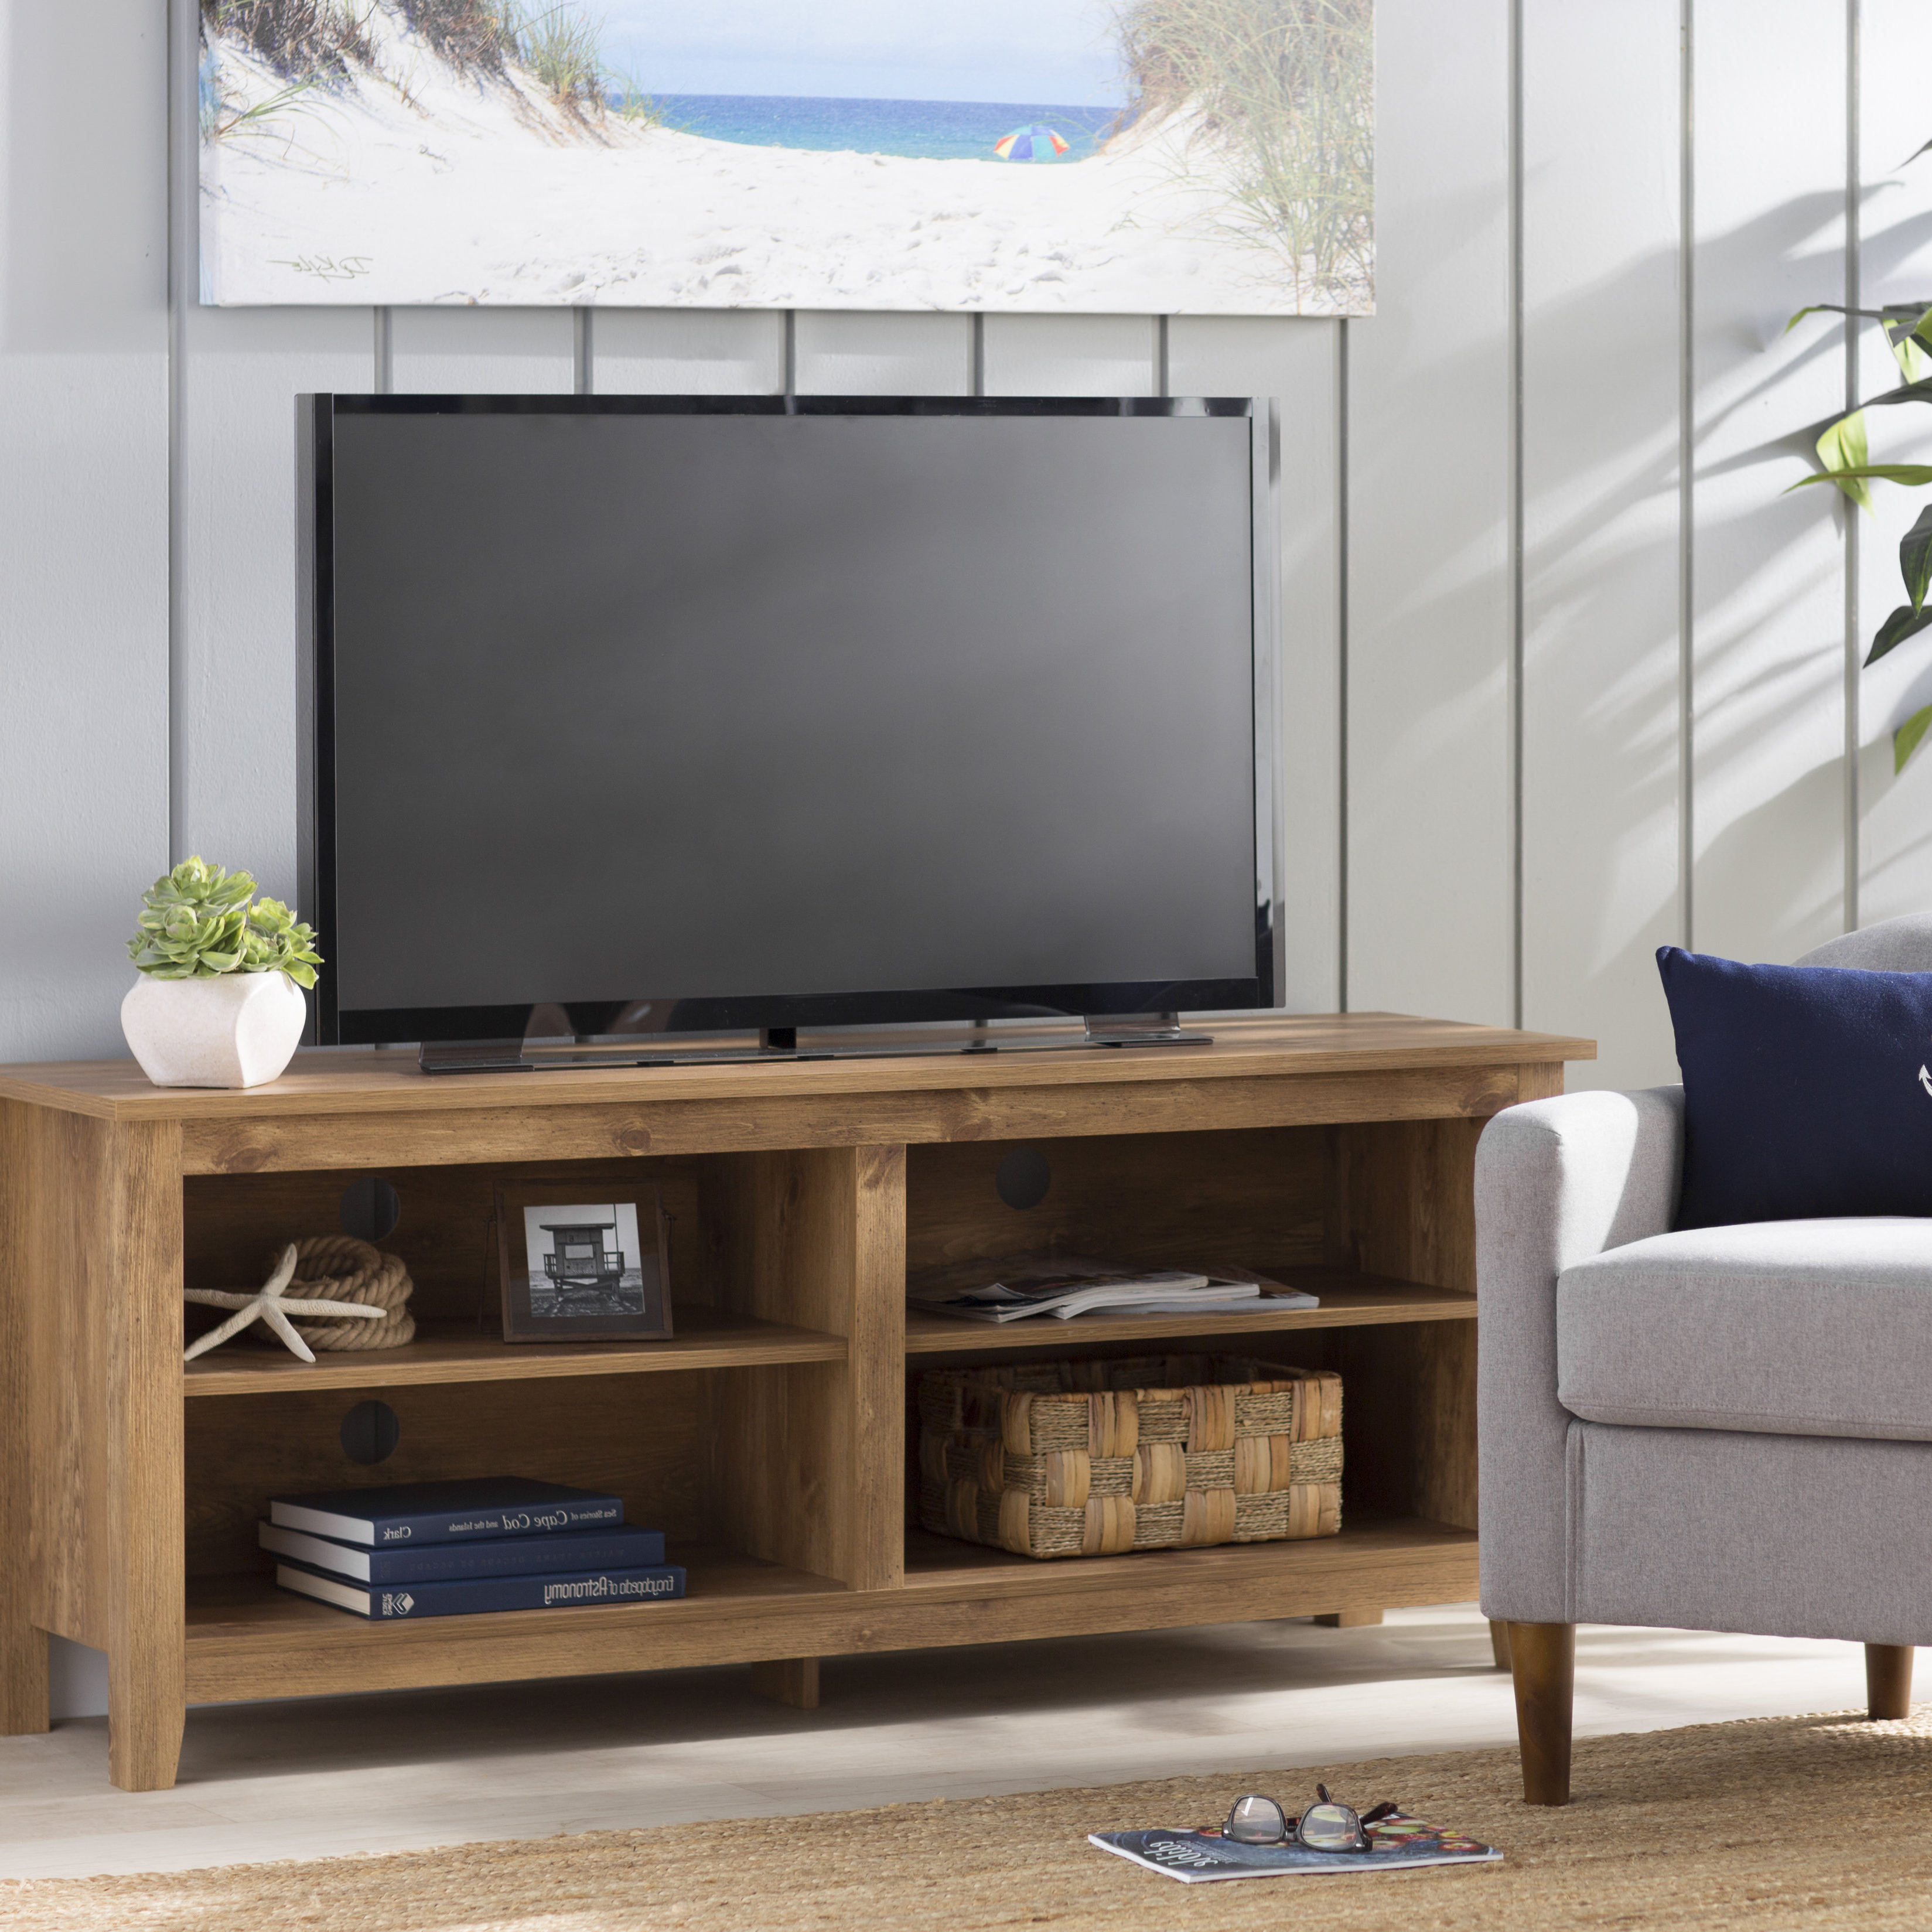 Tv Stand For 75 Inch Tv | Wayfair For Laurent 50 Inch Tv Stands (View 12 of 20)